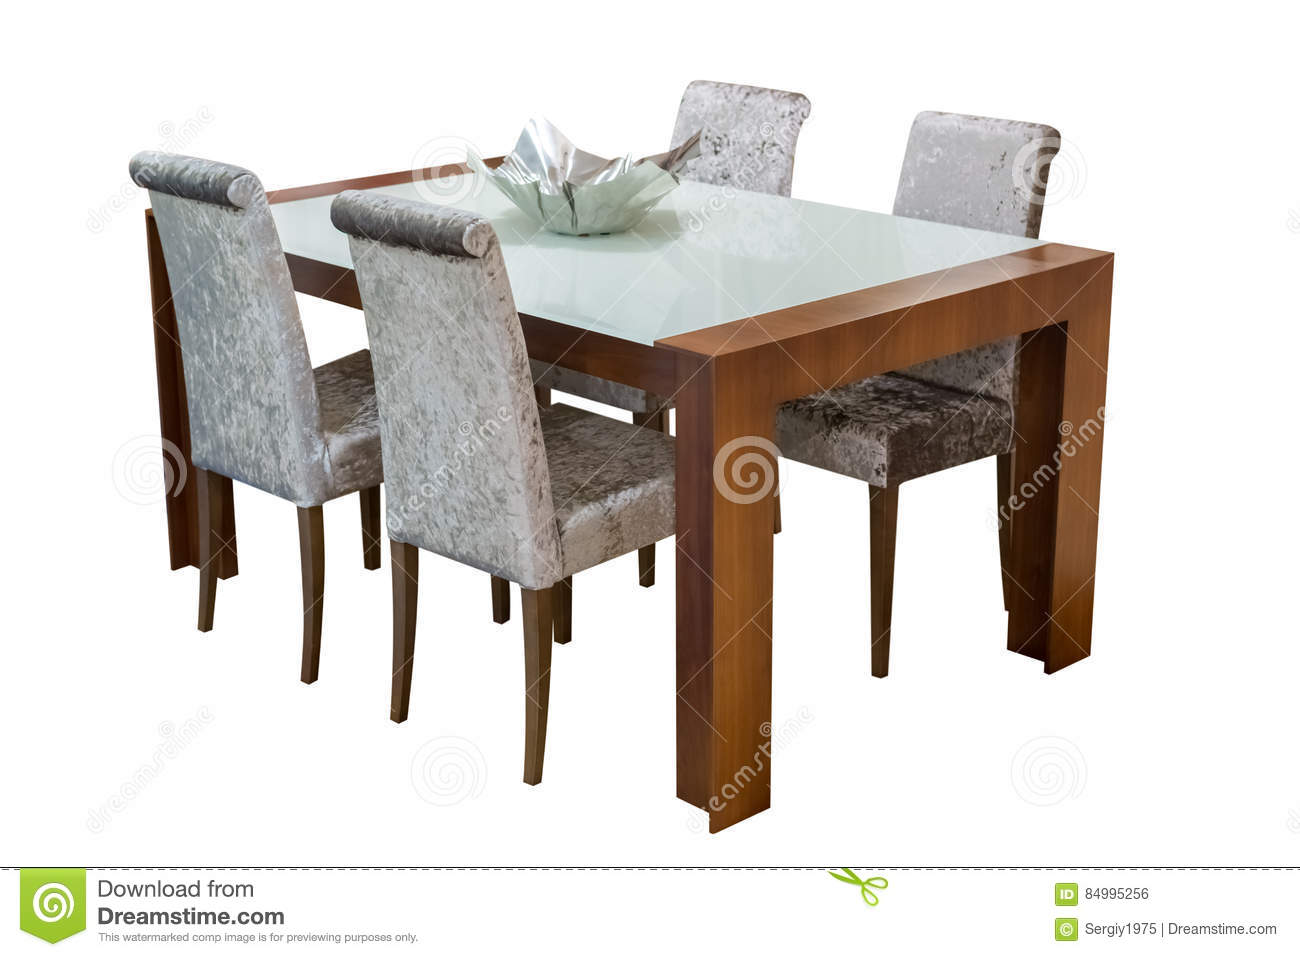 Wooden dining table background - Background Chairs Dining Image Isolated Table White Wooden